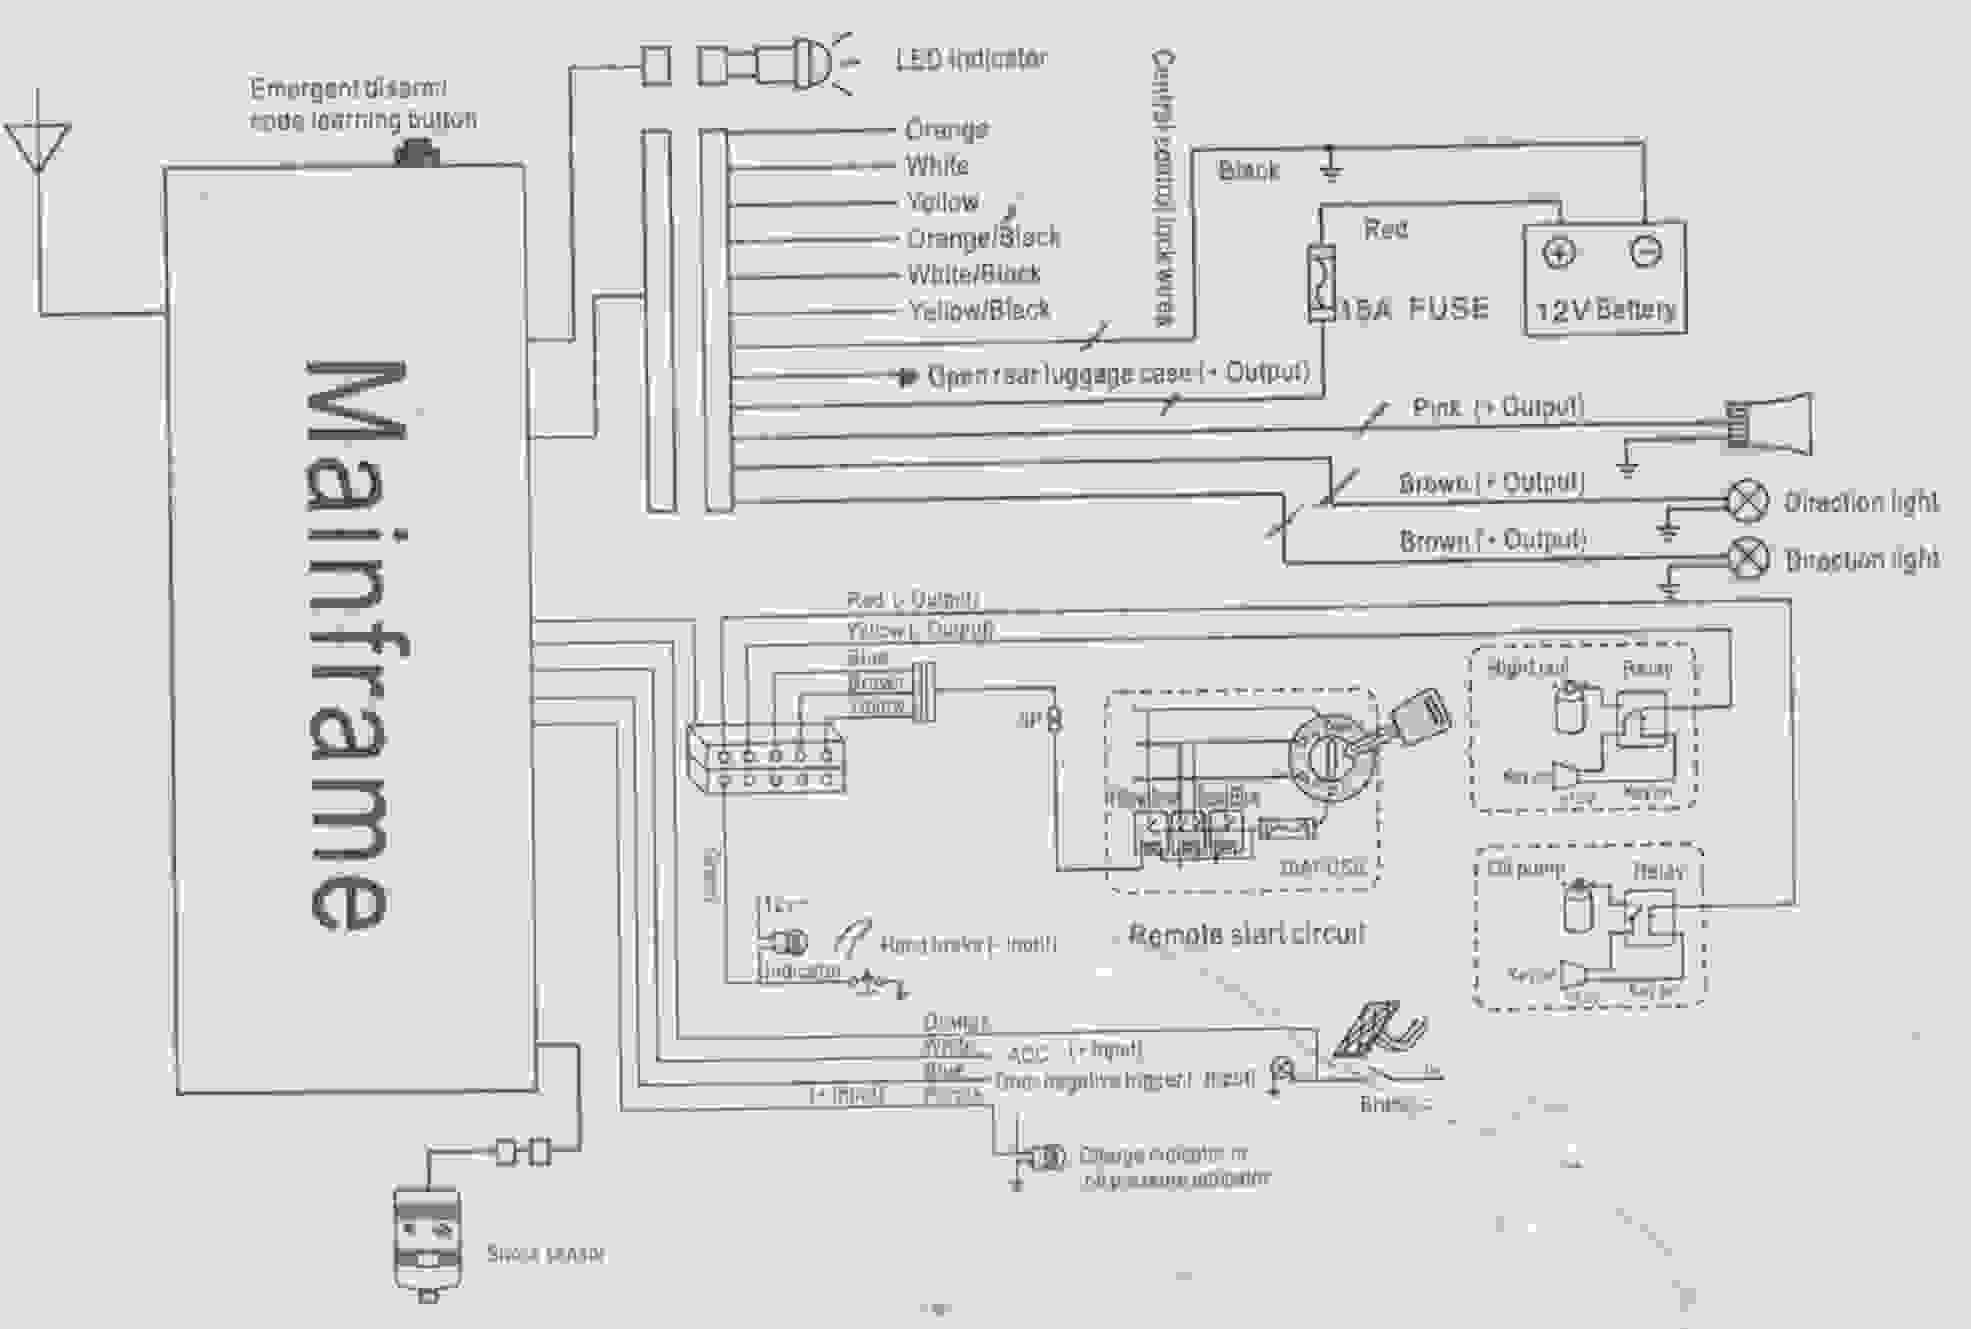 Aolin Car Alarm Wiring Diagram